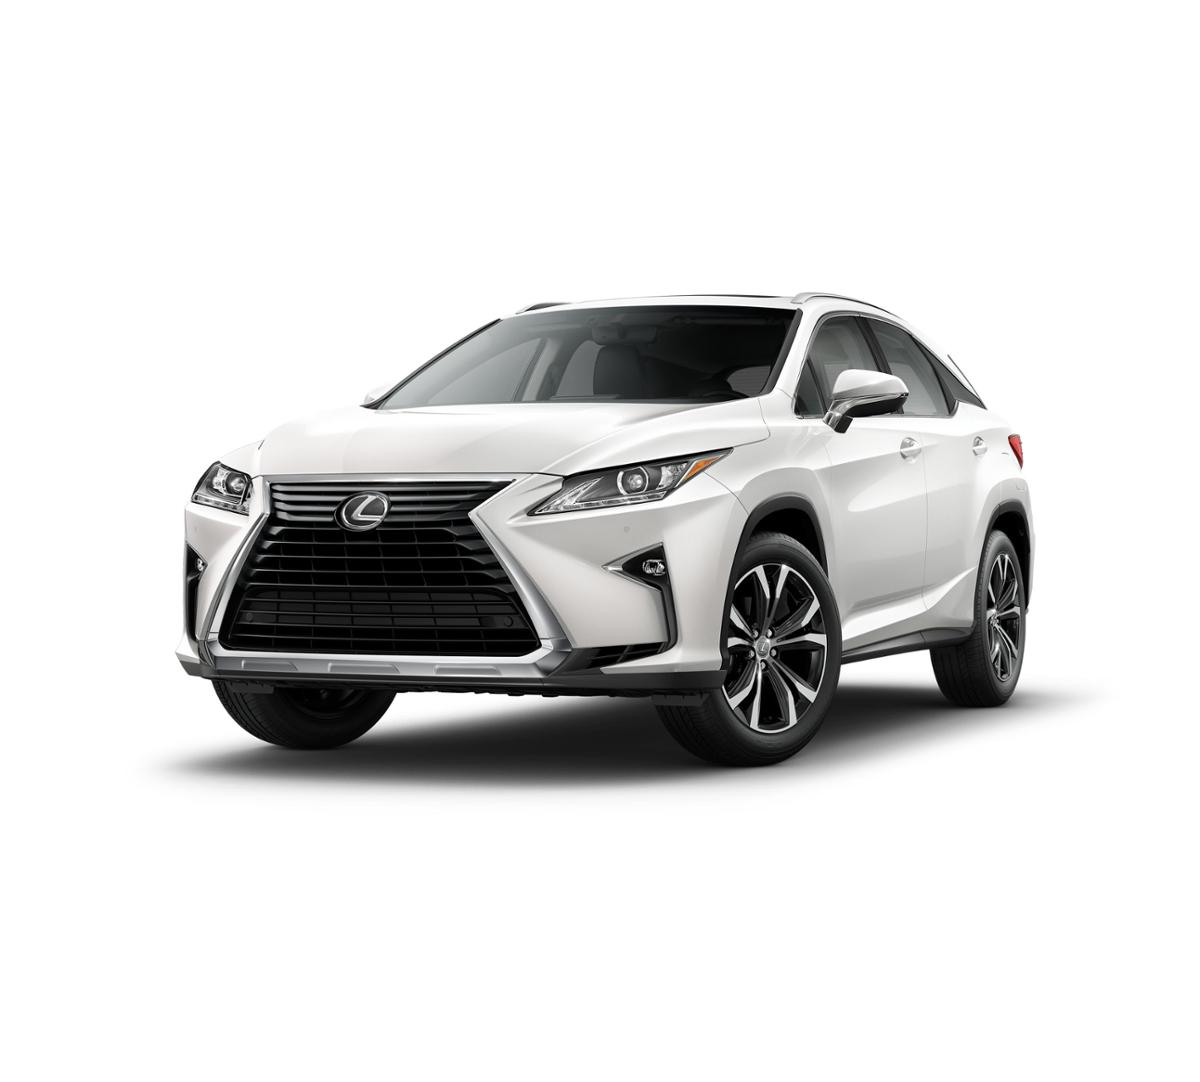 2018 Lexus RX 350 Vehicle Photo in Modesto, CA 95356